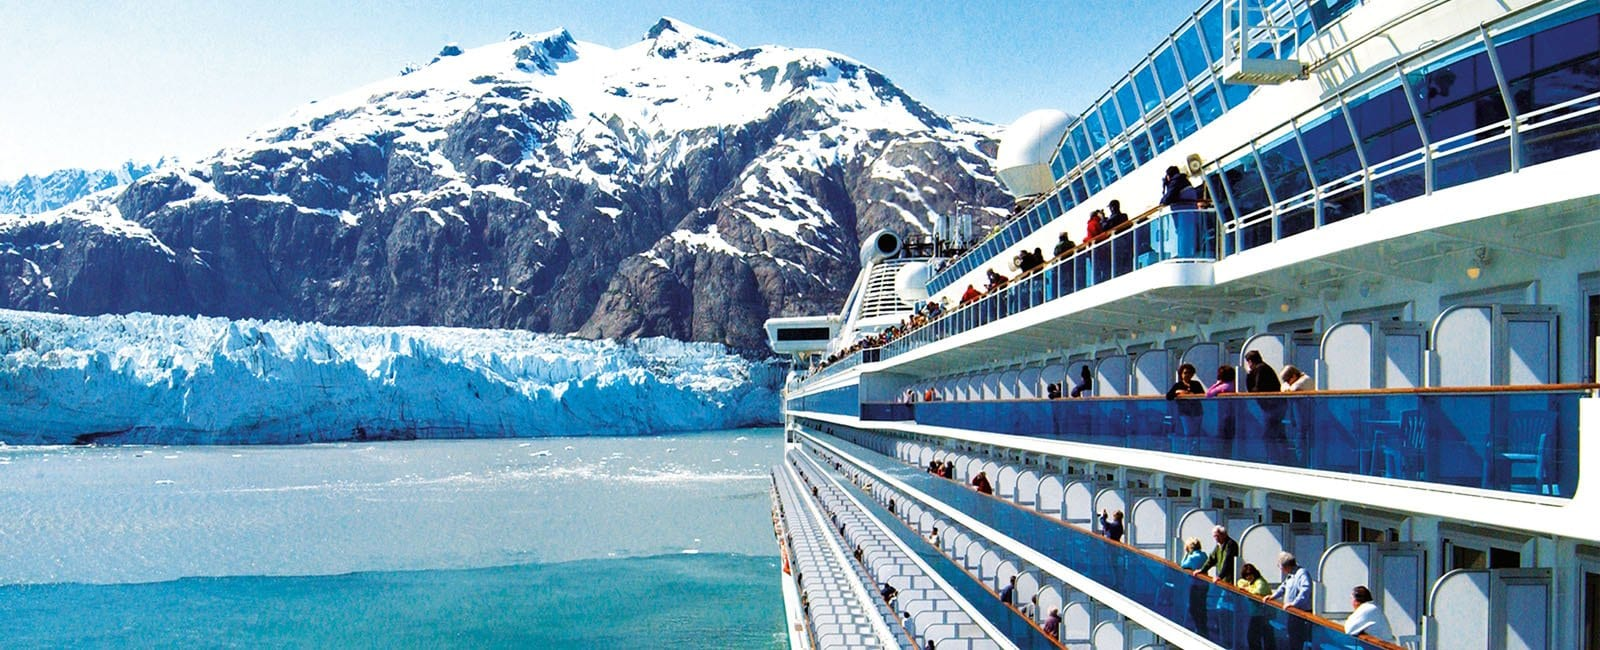 The Best Alaska Cruise Sailing in 2019 & 2020